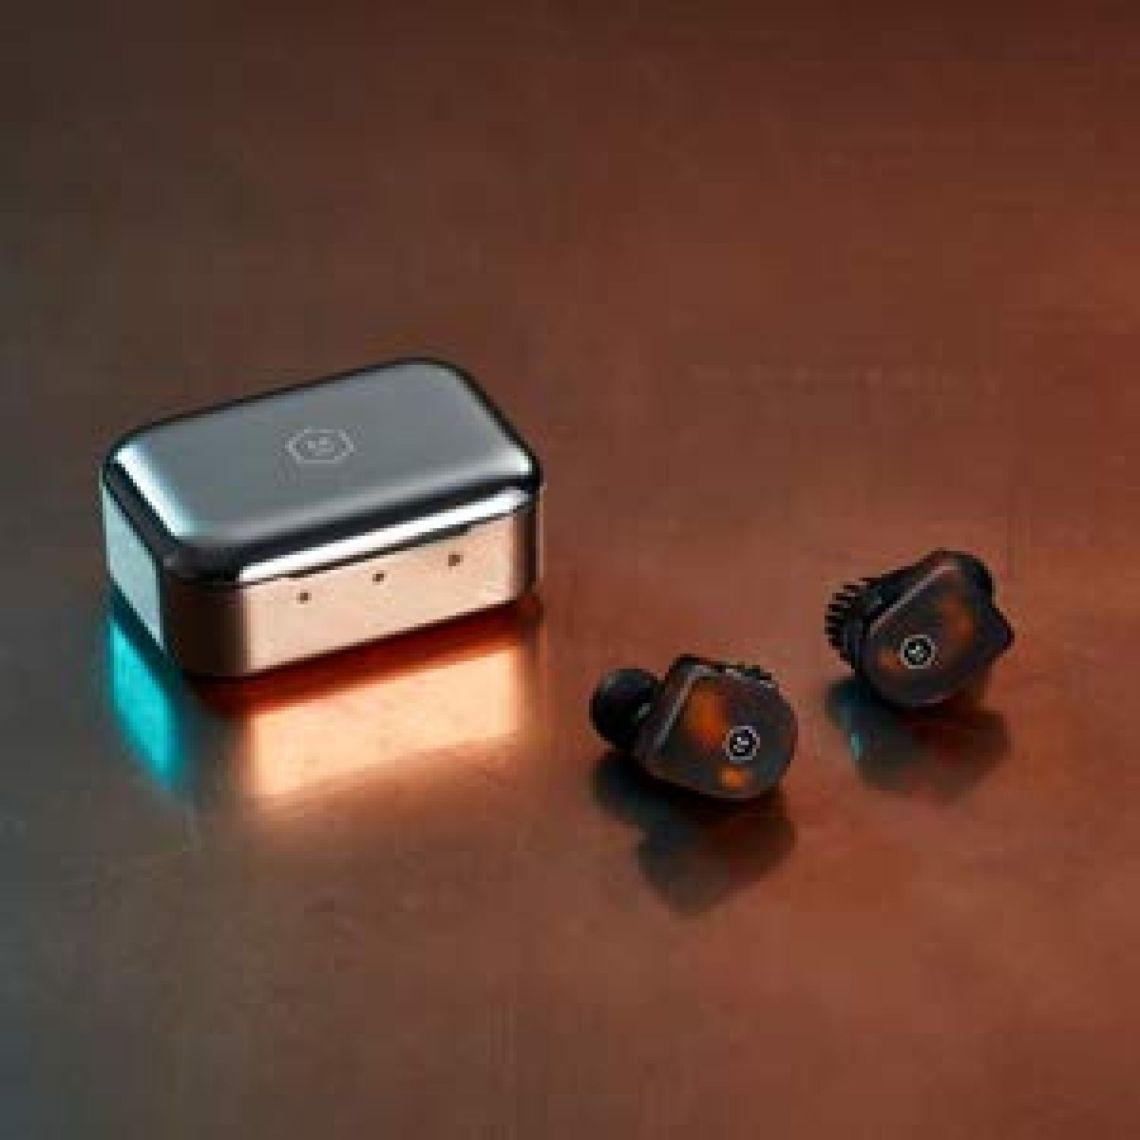 Amazon.com: Master & Dynamic MW07 True Wireless Earphones with Best-in-Class Bluetooth 4.2 Connectivity and 10mm Beryllium Drivers for Unmatched Sound in a Wireless Earbud, Tortoiseshell: Electronics